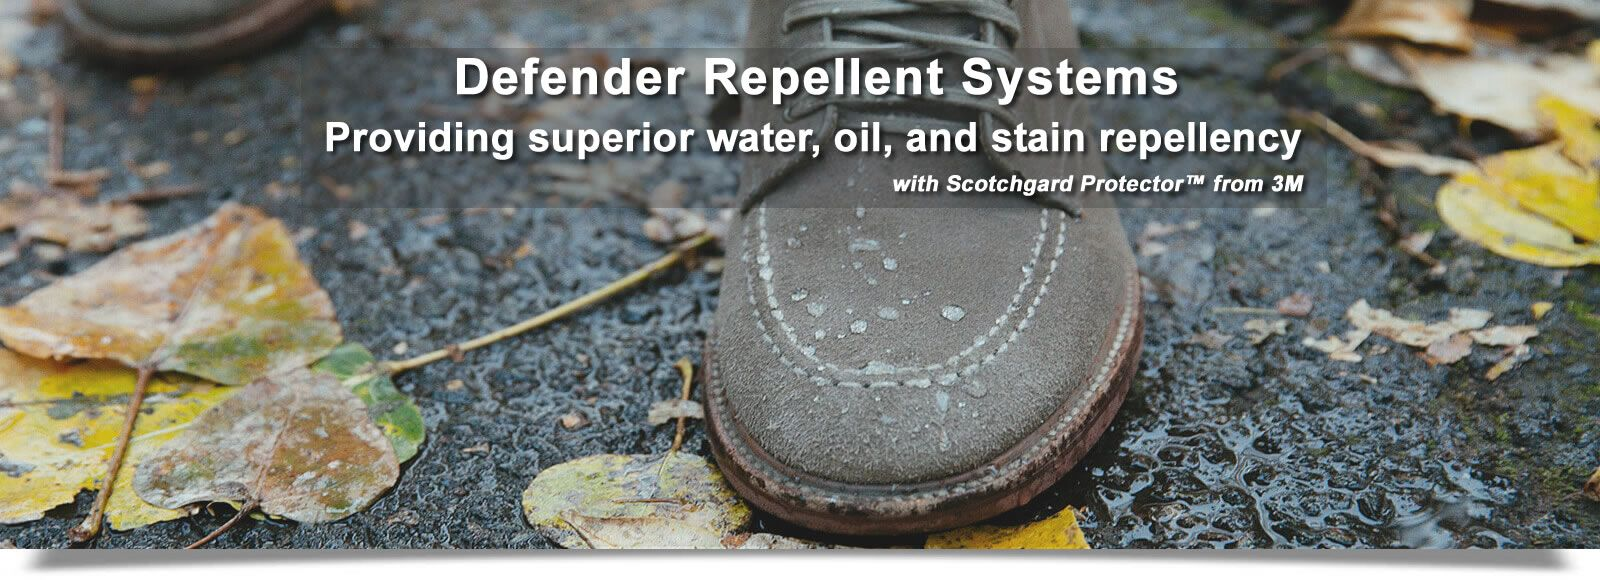 Our Defender Repellent Systems provides superior water, oil, and stain repellency for shoes, boots, and more